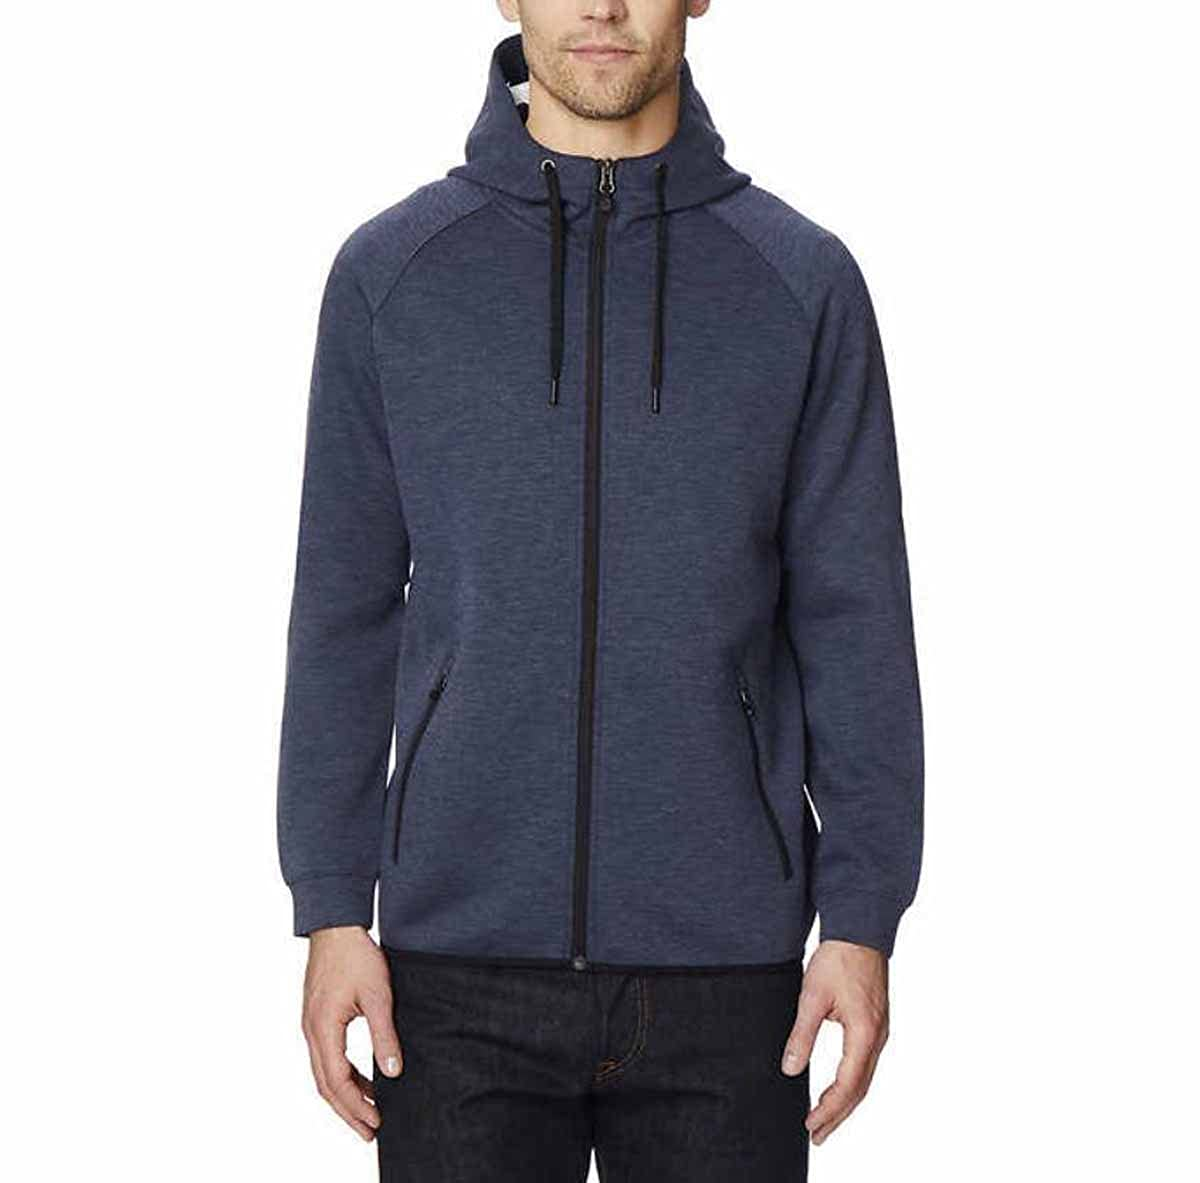 32 DEGREES Men's Hoodie Sweatshirt Full Zip Tech Fleece Track Jacket